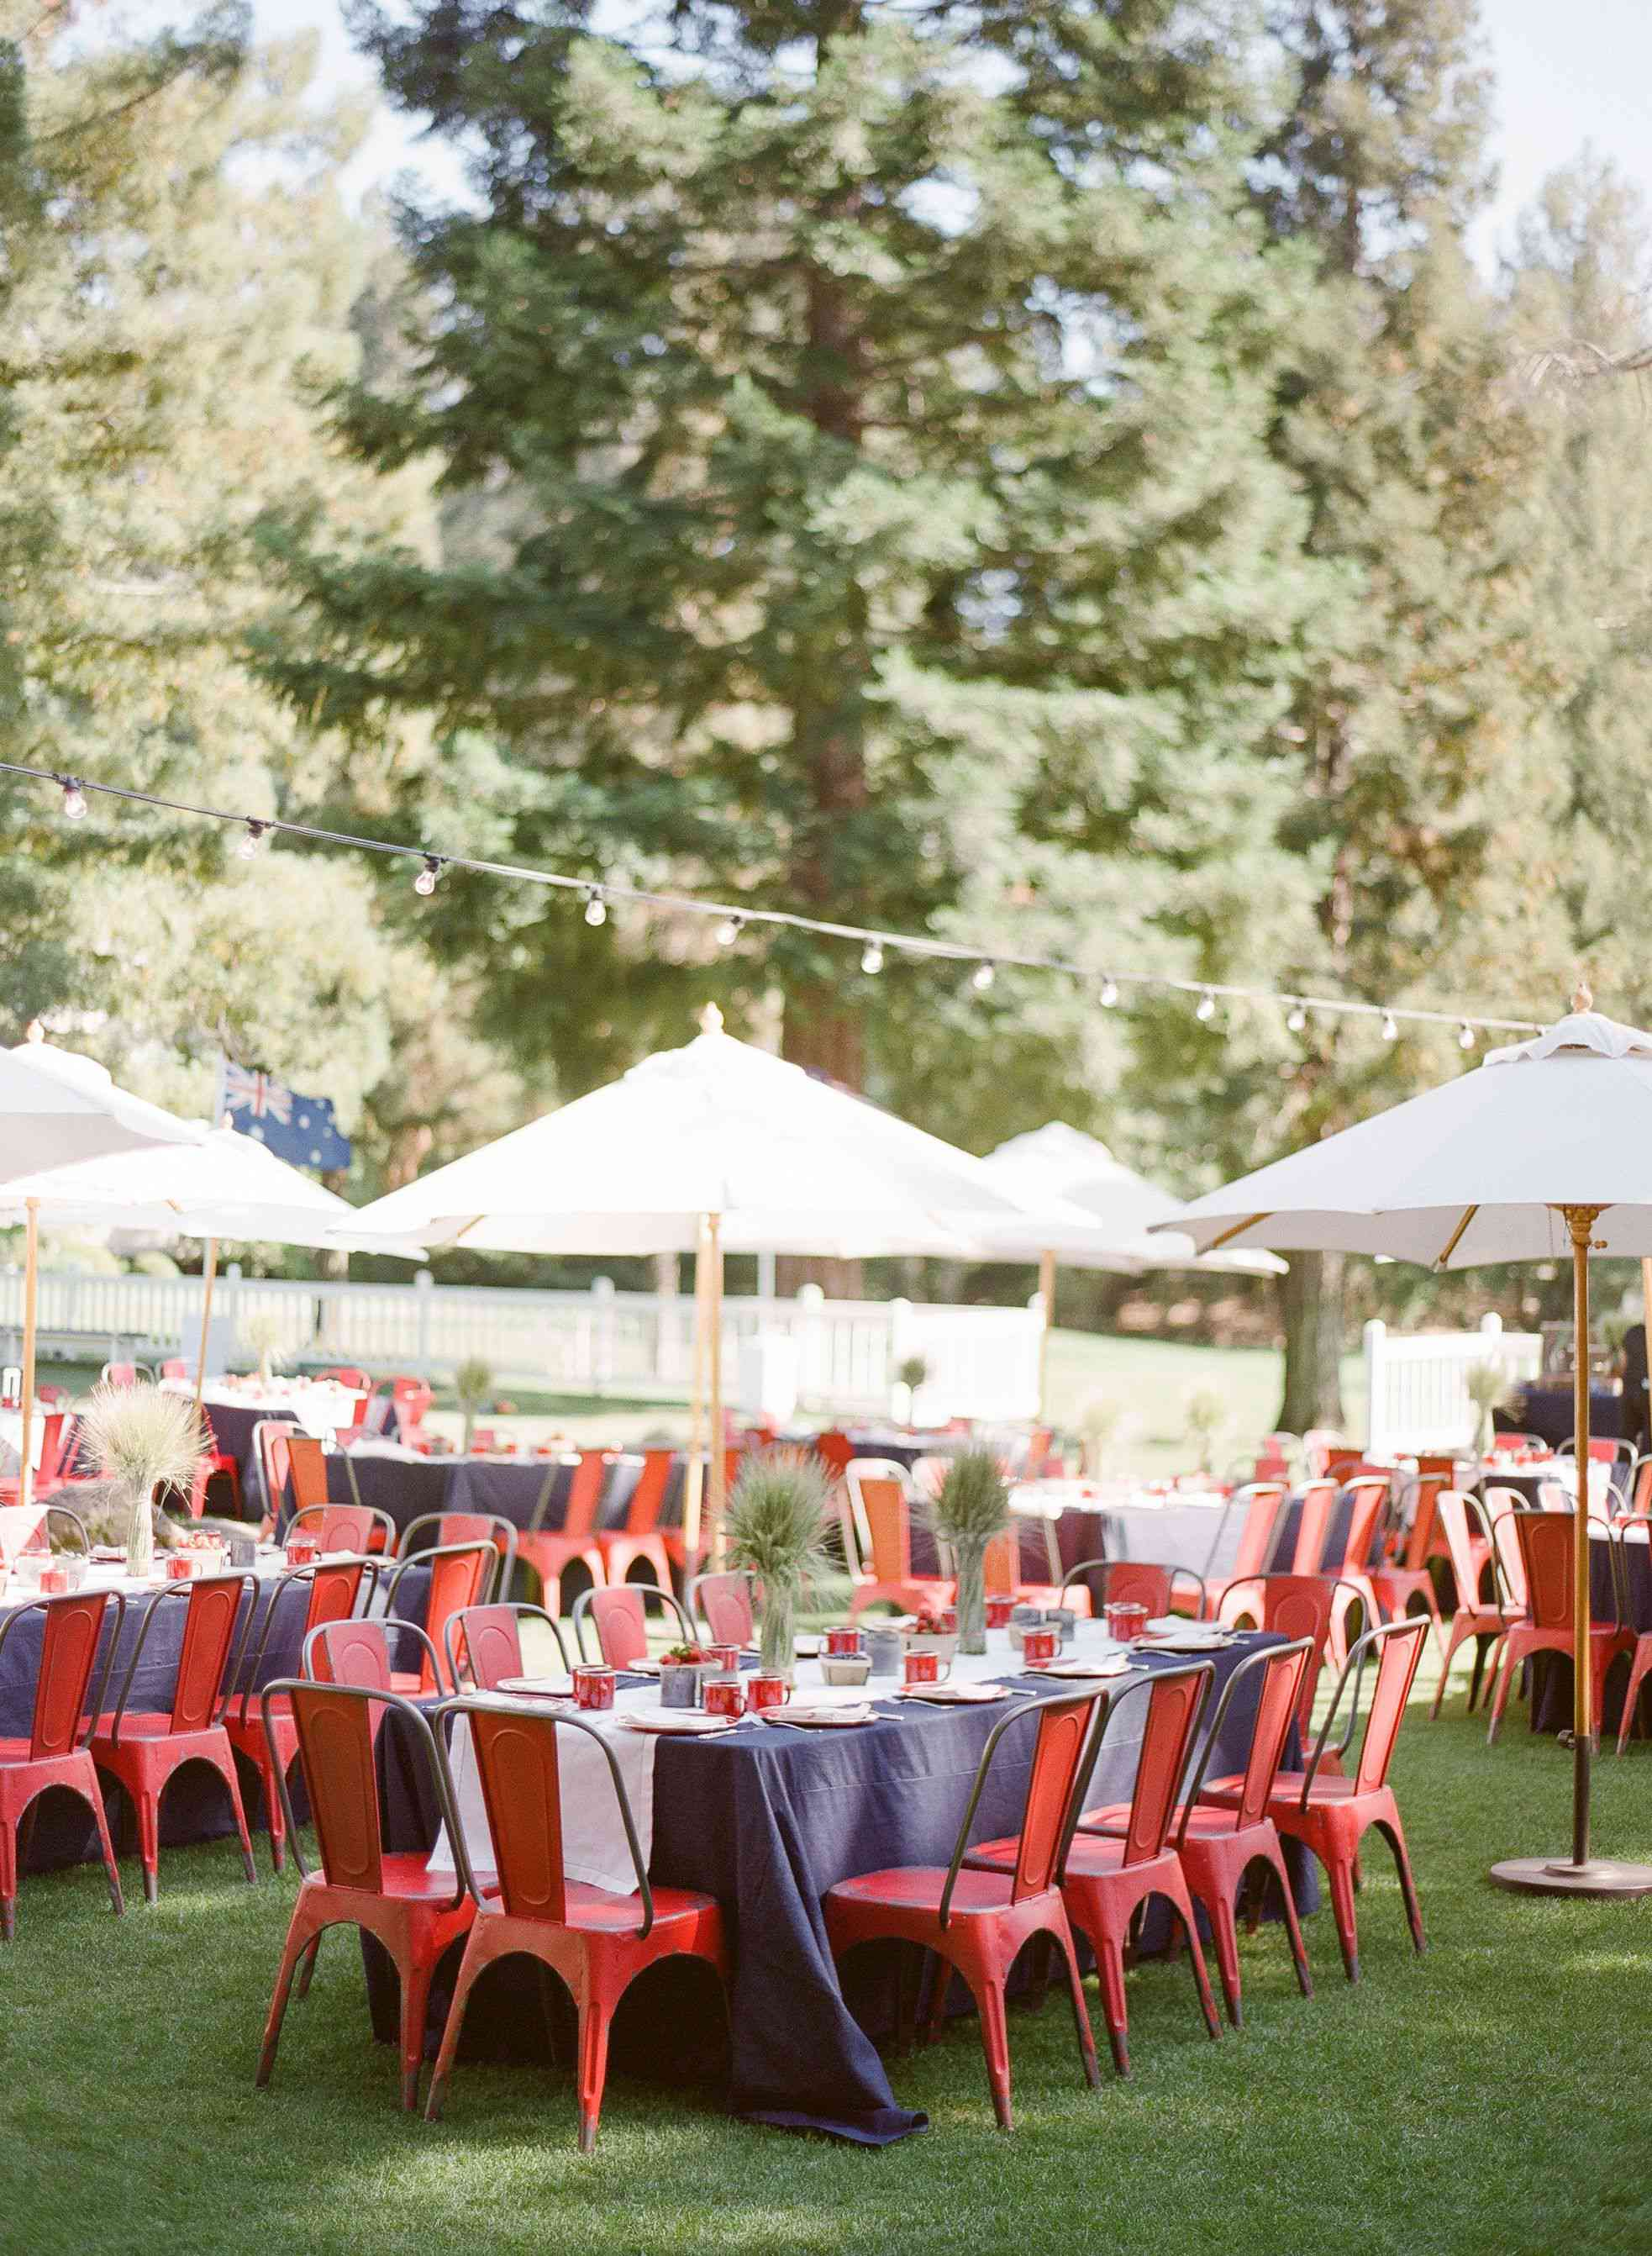 Picnic tables with umbrellas at an outdoor reception